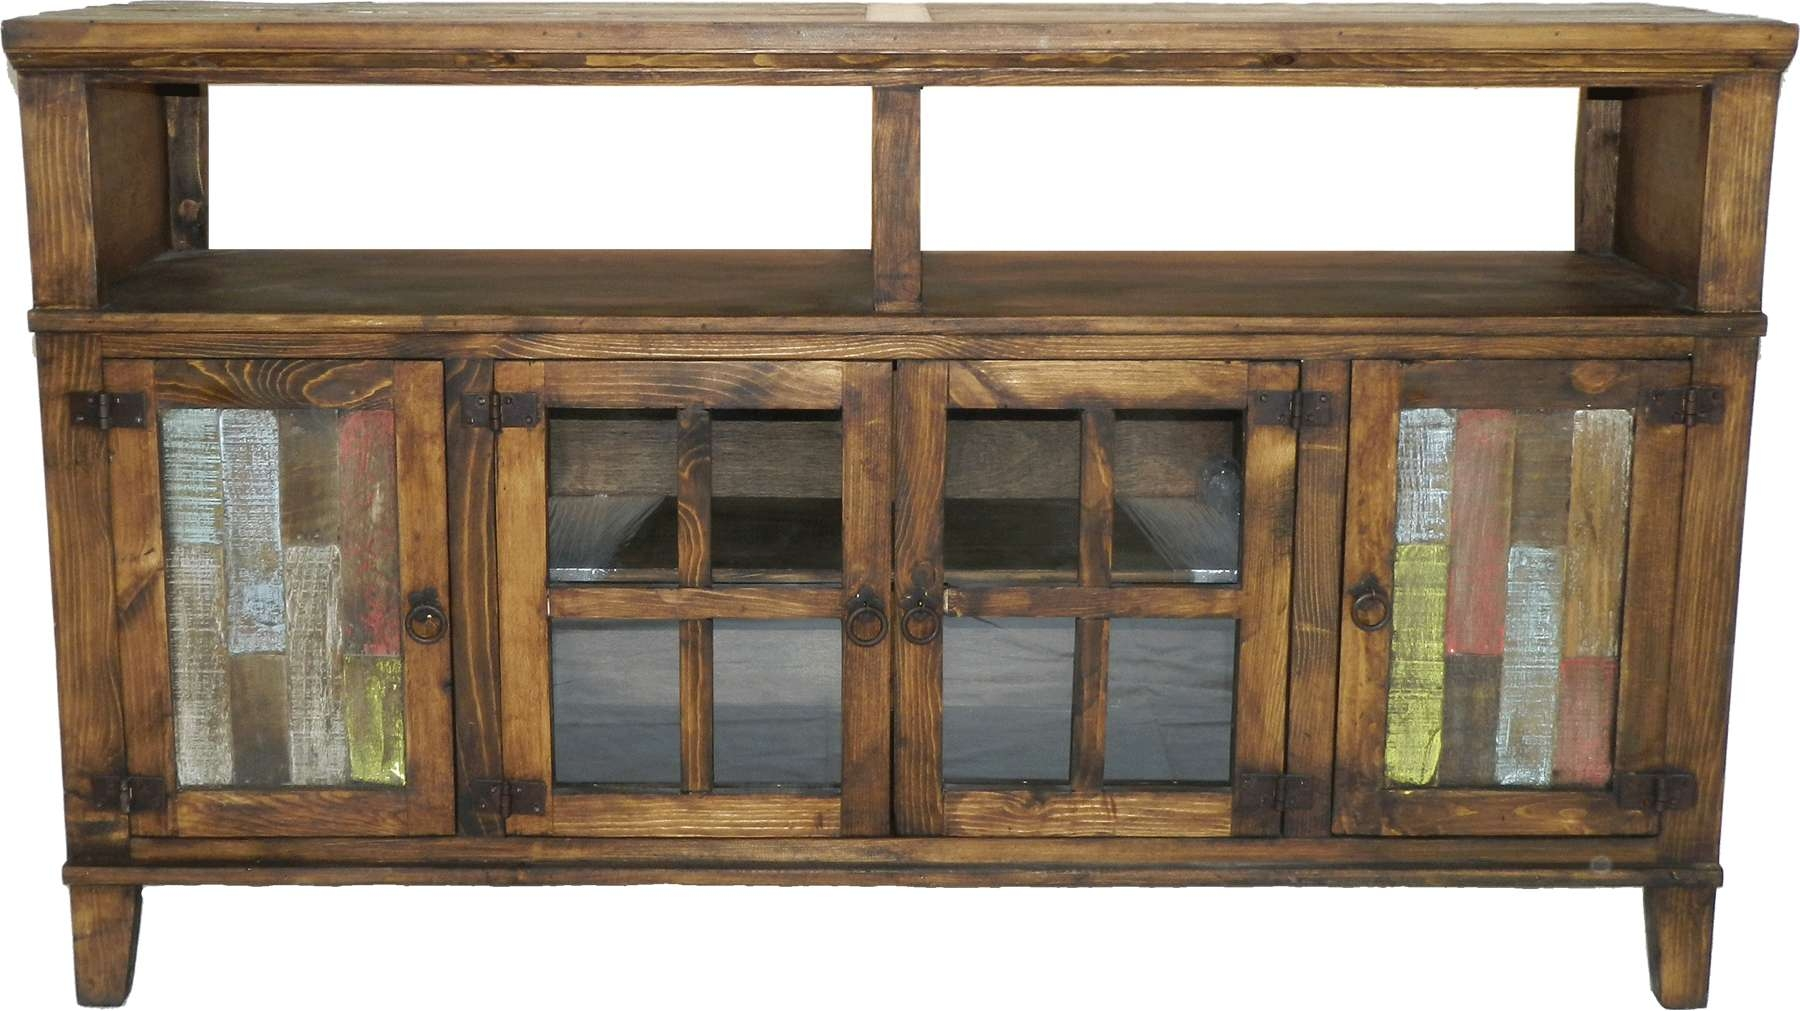 Rustic Tv Console Table Image Collections – Coffee Table Design Ideas Throughout Rustic Tv Stands For Sale (View 8 of 20)